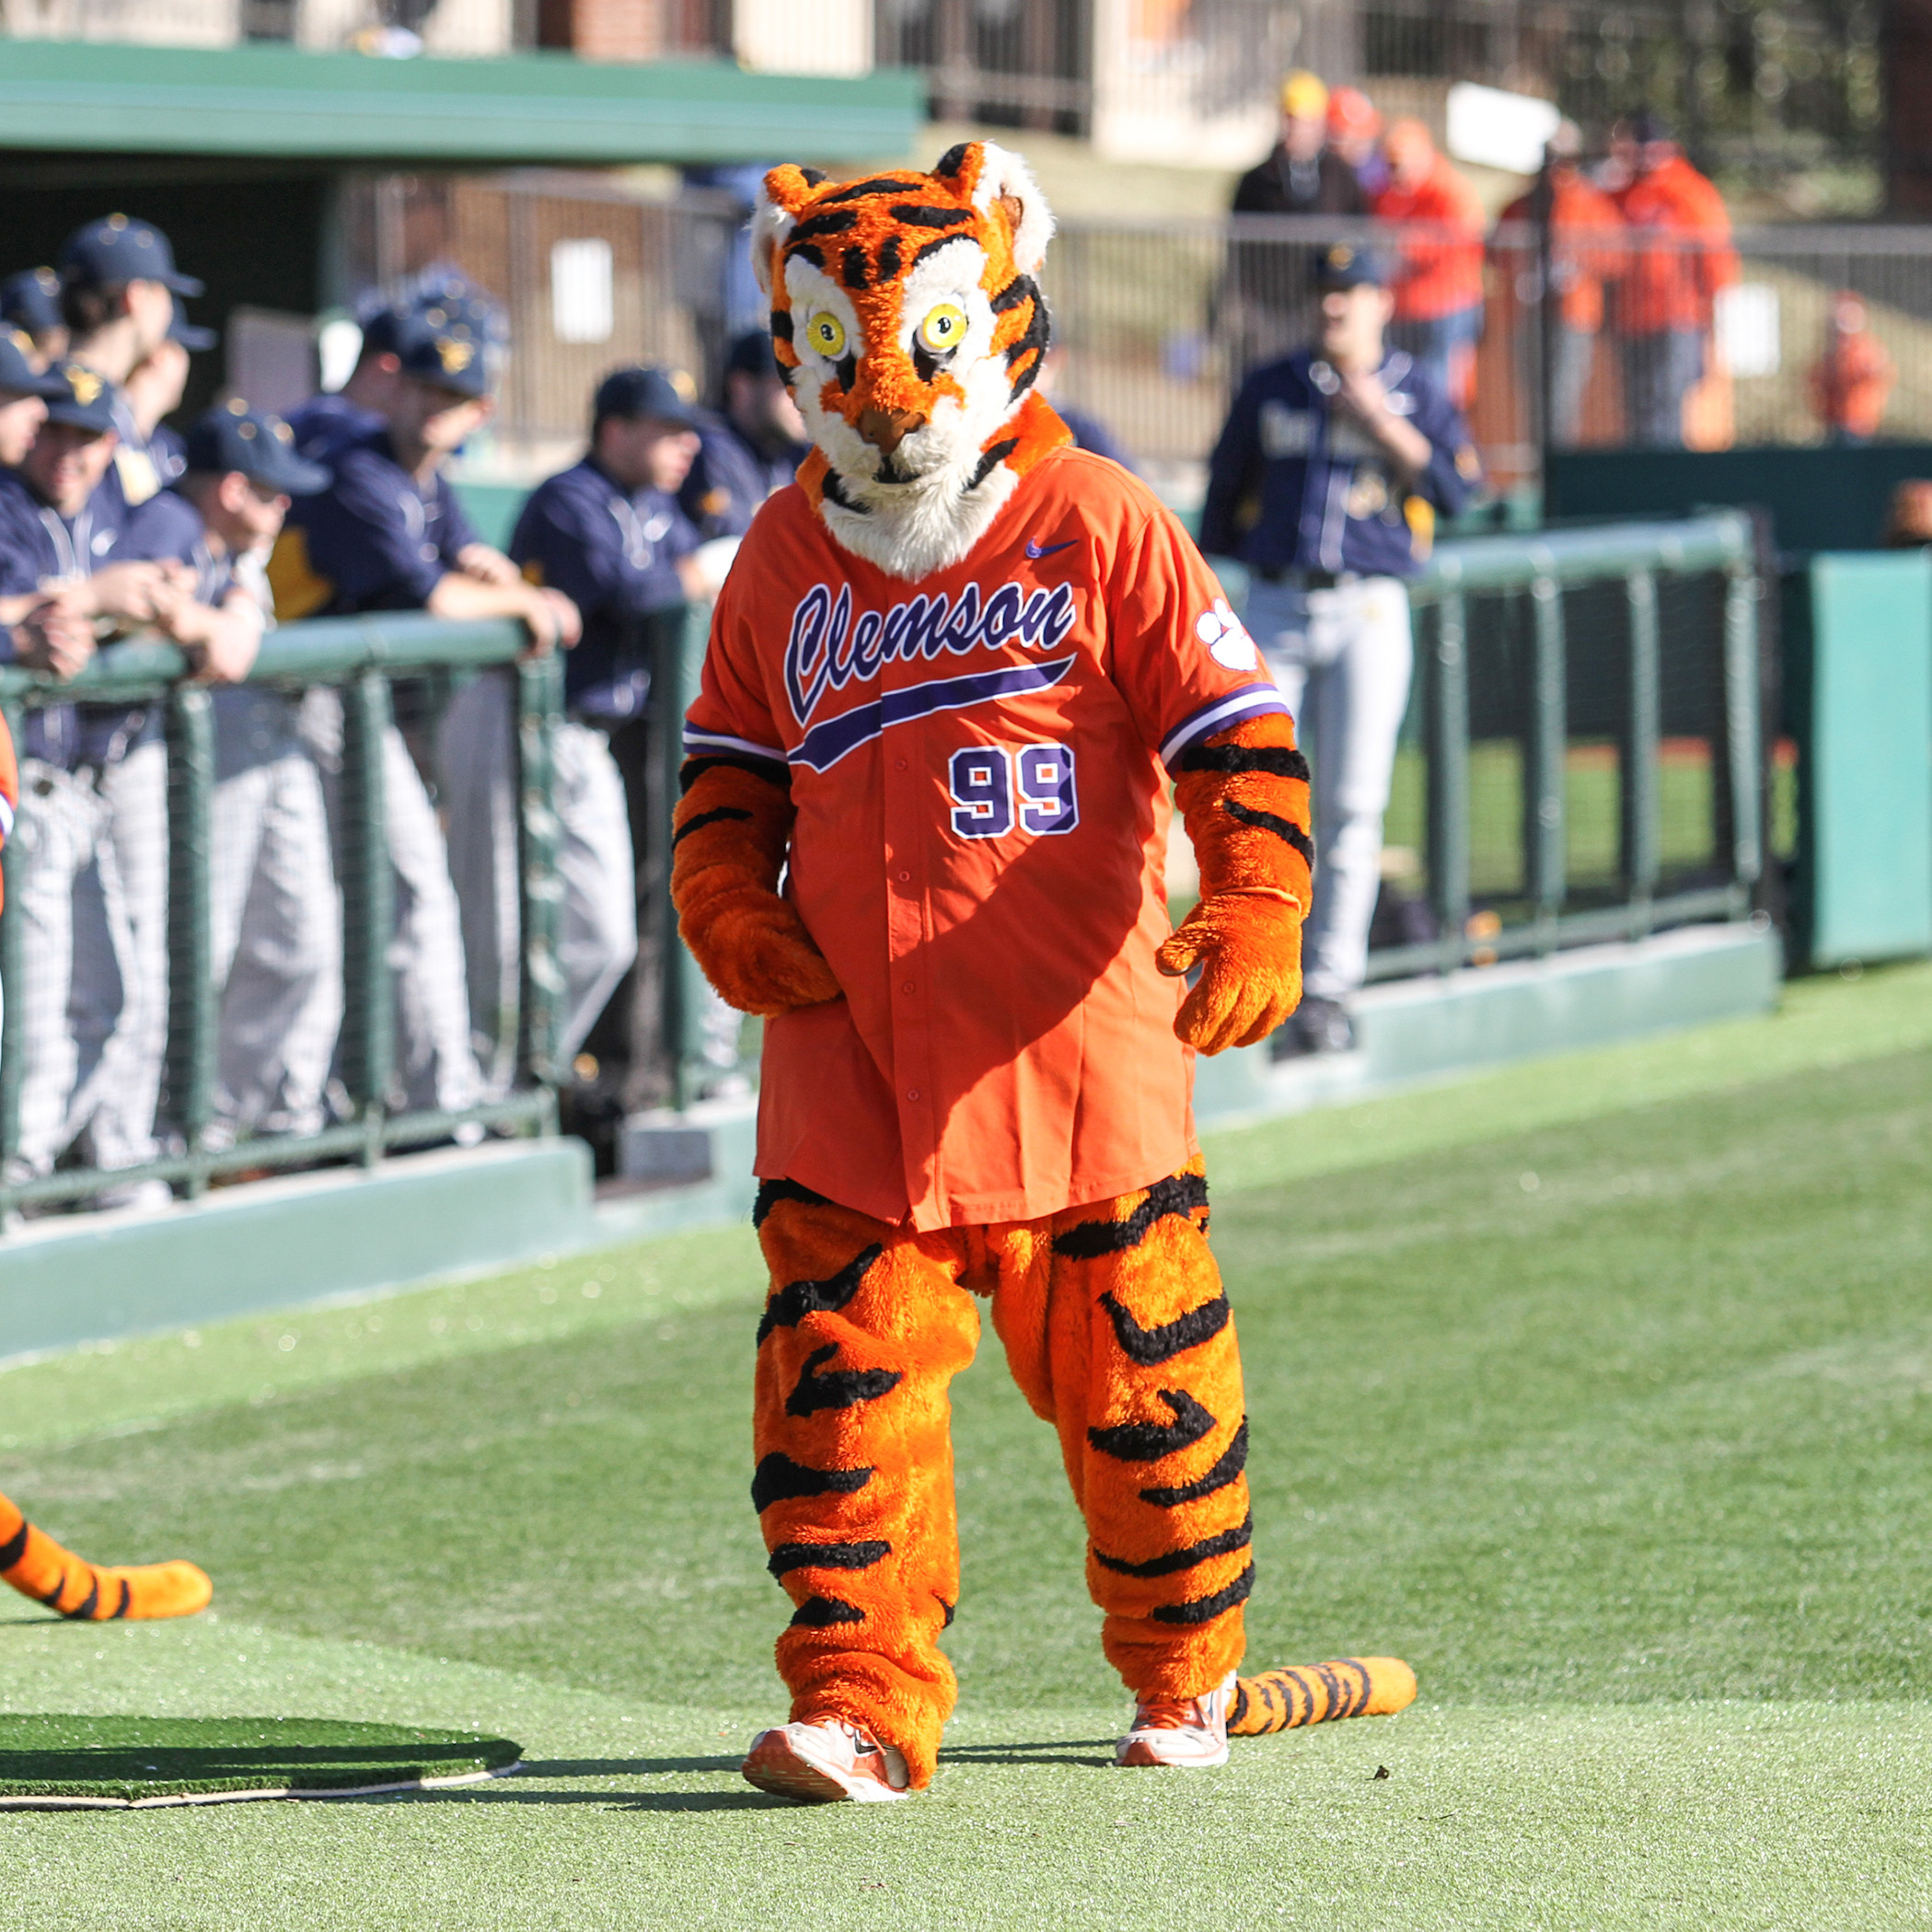 Clemson University 2015-16 Mascot Tryout Information